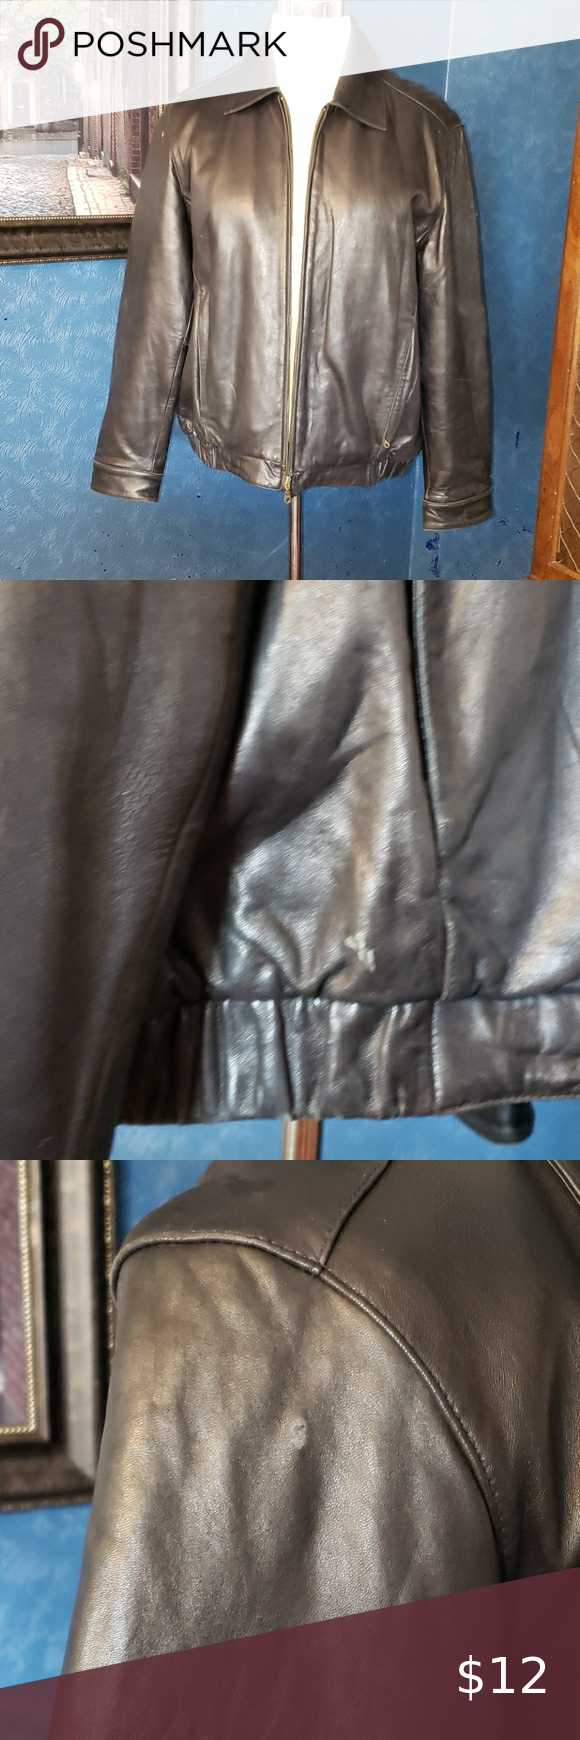 Mens Covington Leather Coat Jacket L See Pictures For Condition There Are A Few Small Flaws In The Leather Zipper W Leather Coat Jacket Leather Coat Jackets [ 1740 x 580 Pixel ]